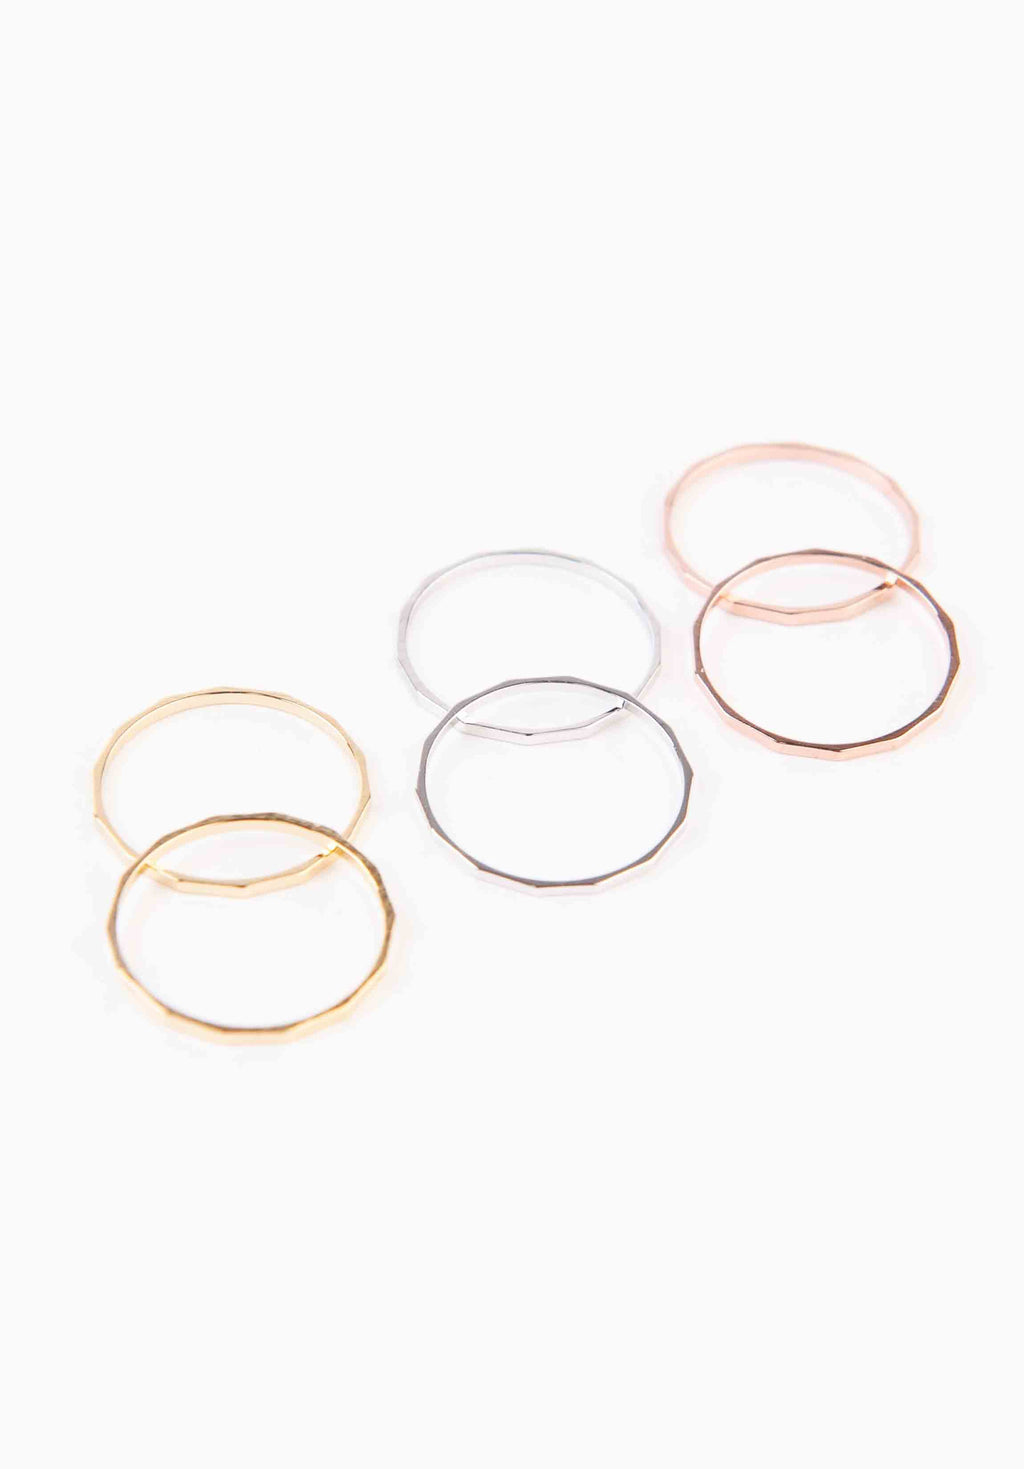 GEOMETRIC MULTI COLORED RING SET | GOLD